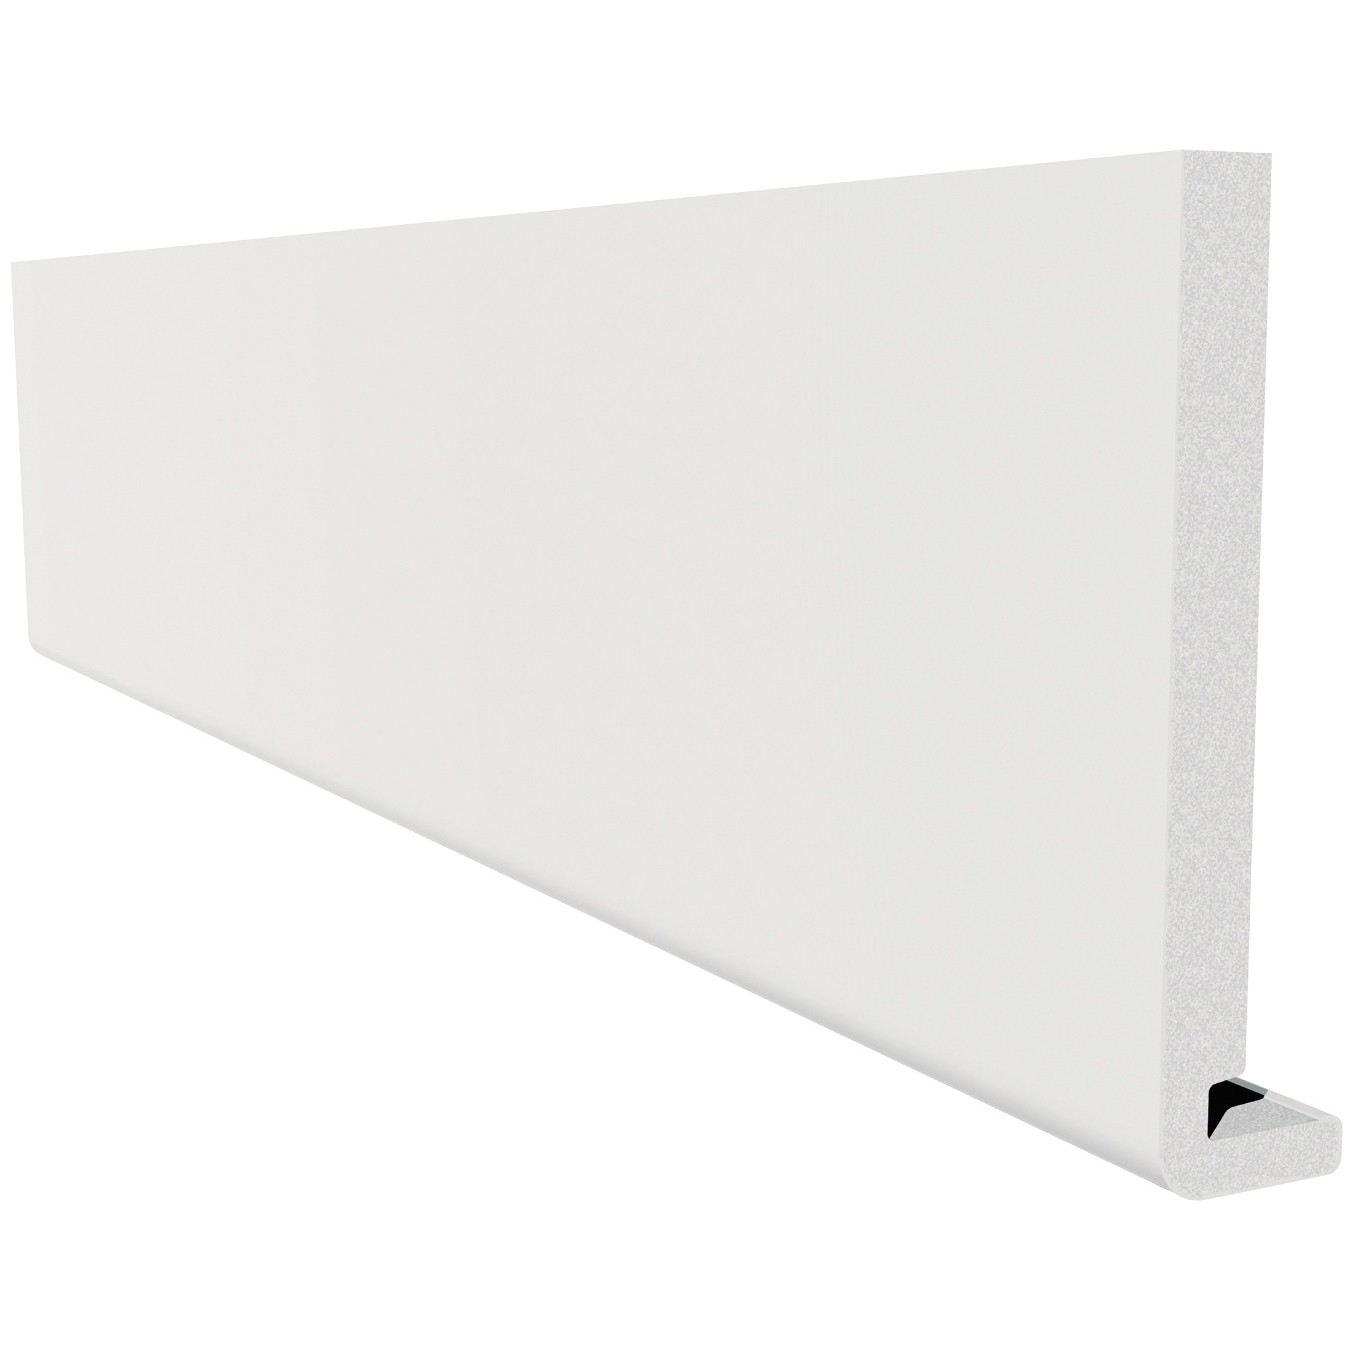 Freefoam Magnum Square Leg 18mm Fascia Board - White, 150mm, 5 metre